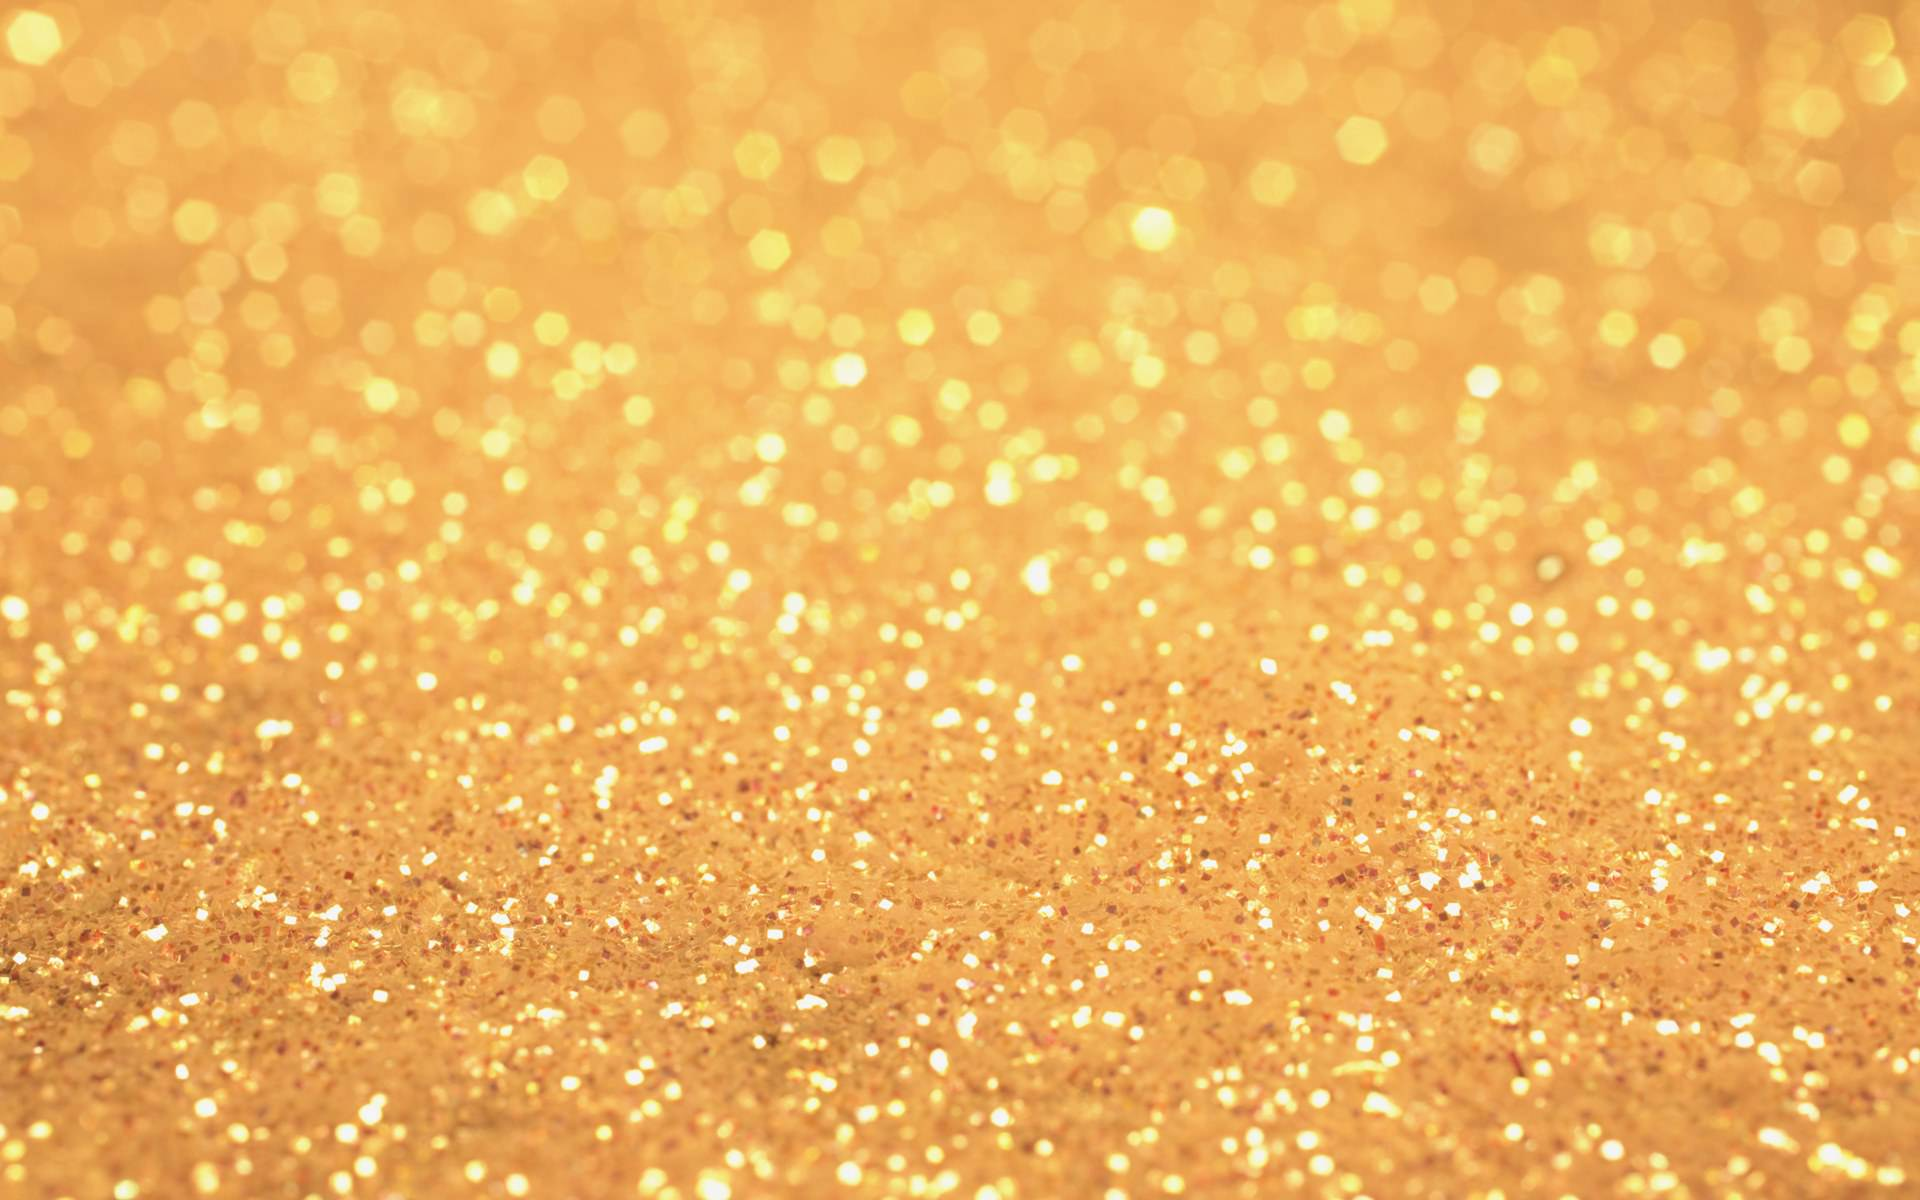 25 Sparkle Backgrounds Wallpaper Pictures Images 1920x1200